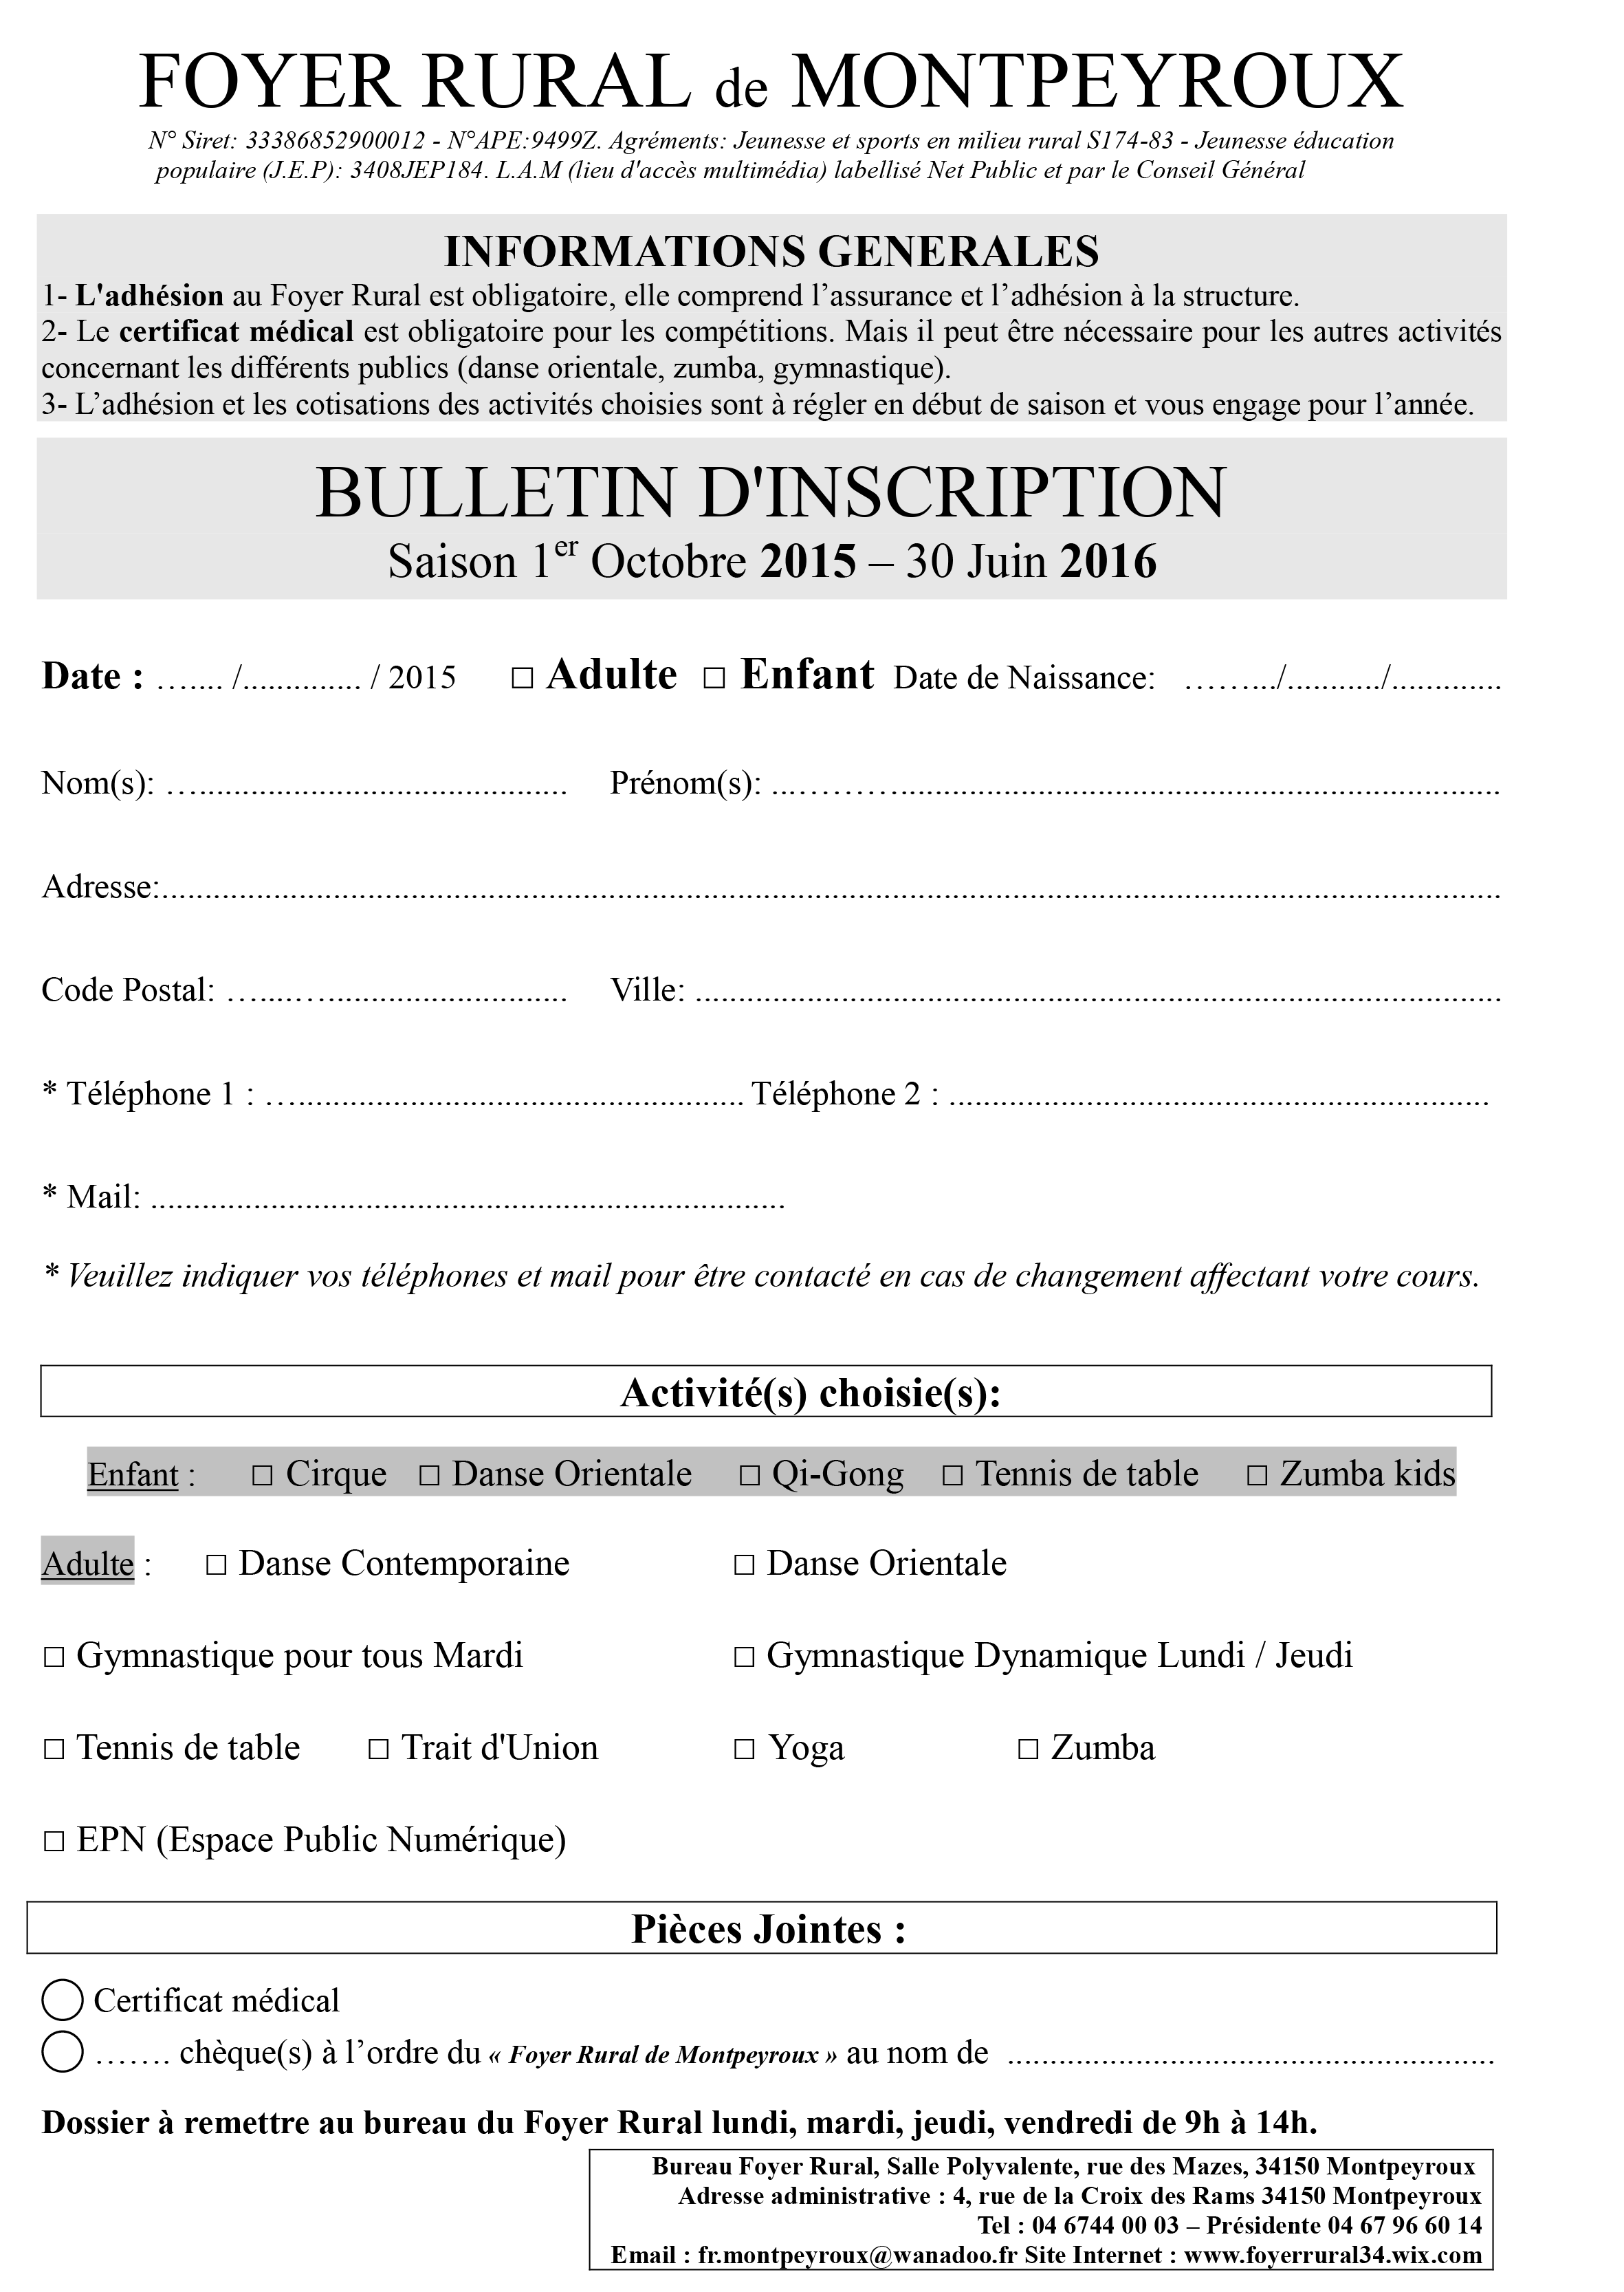 Bulletin d'inscription 2015-2016